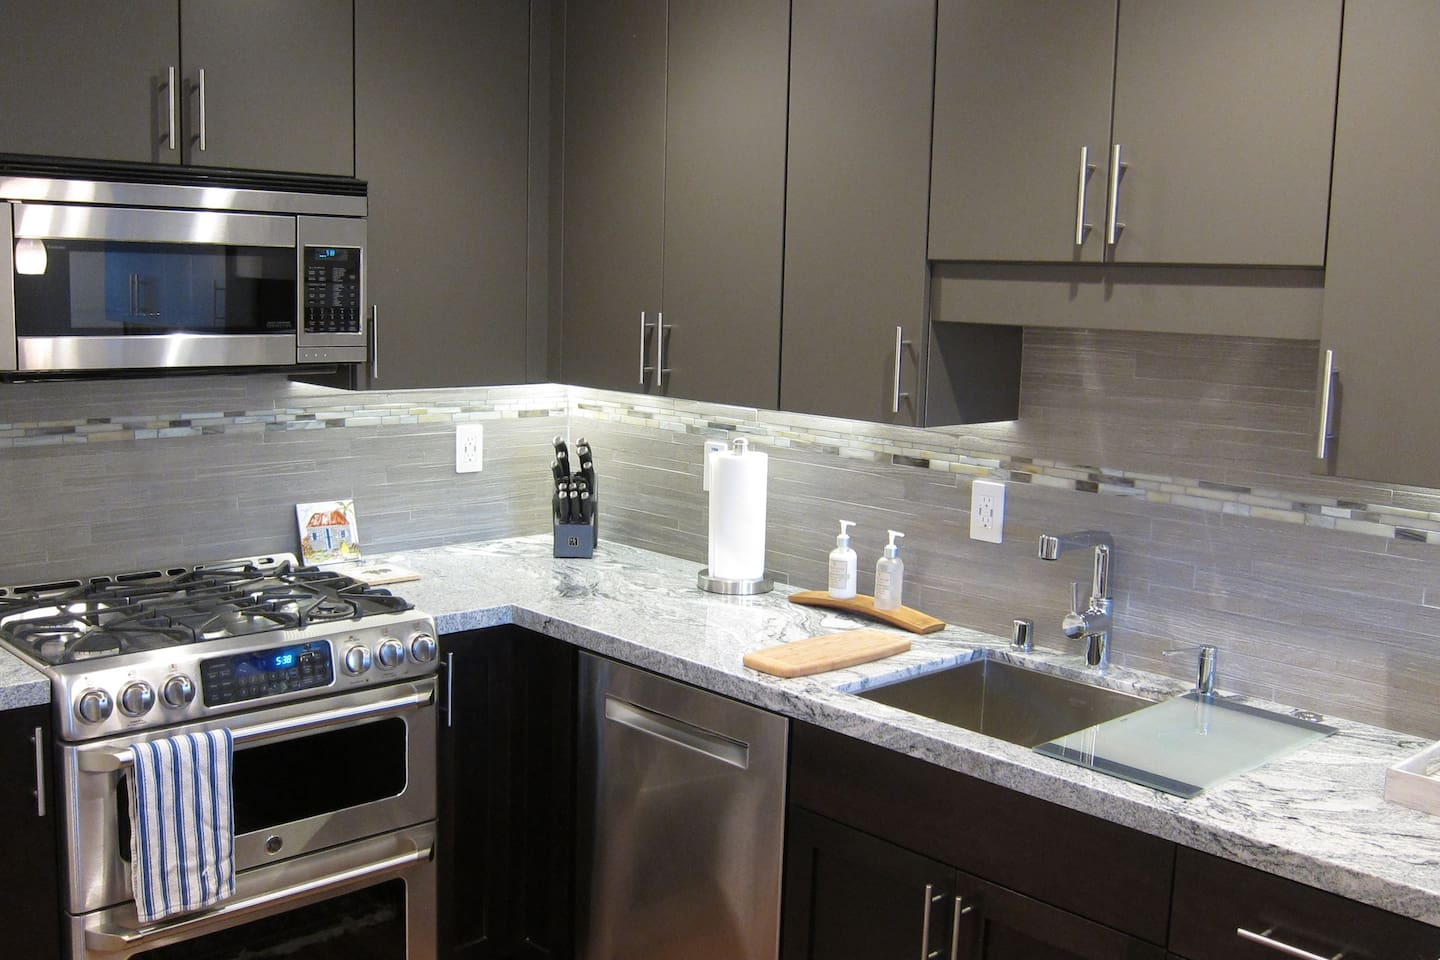 Full chef's kitchen with brand new appliances and granite countertops.